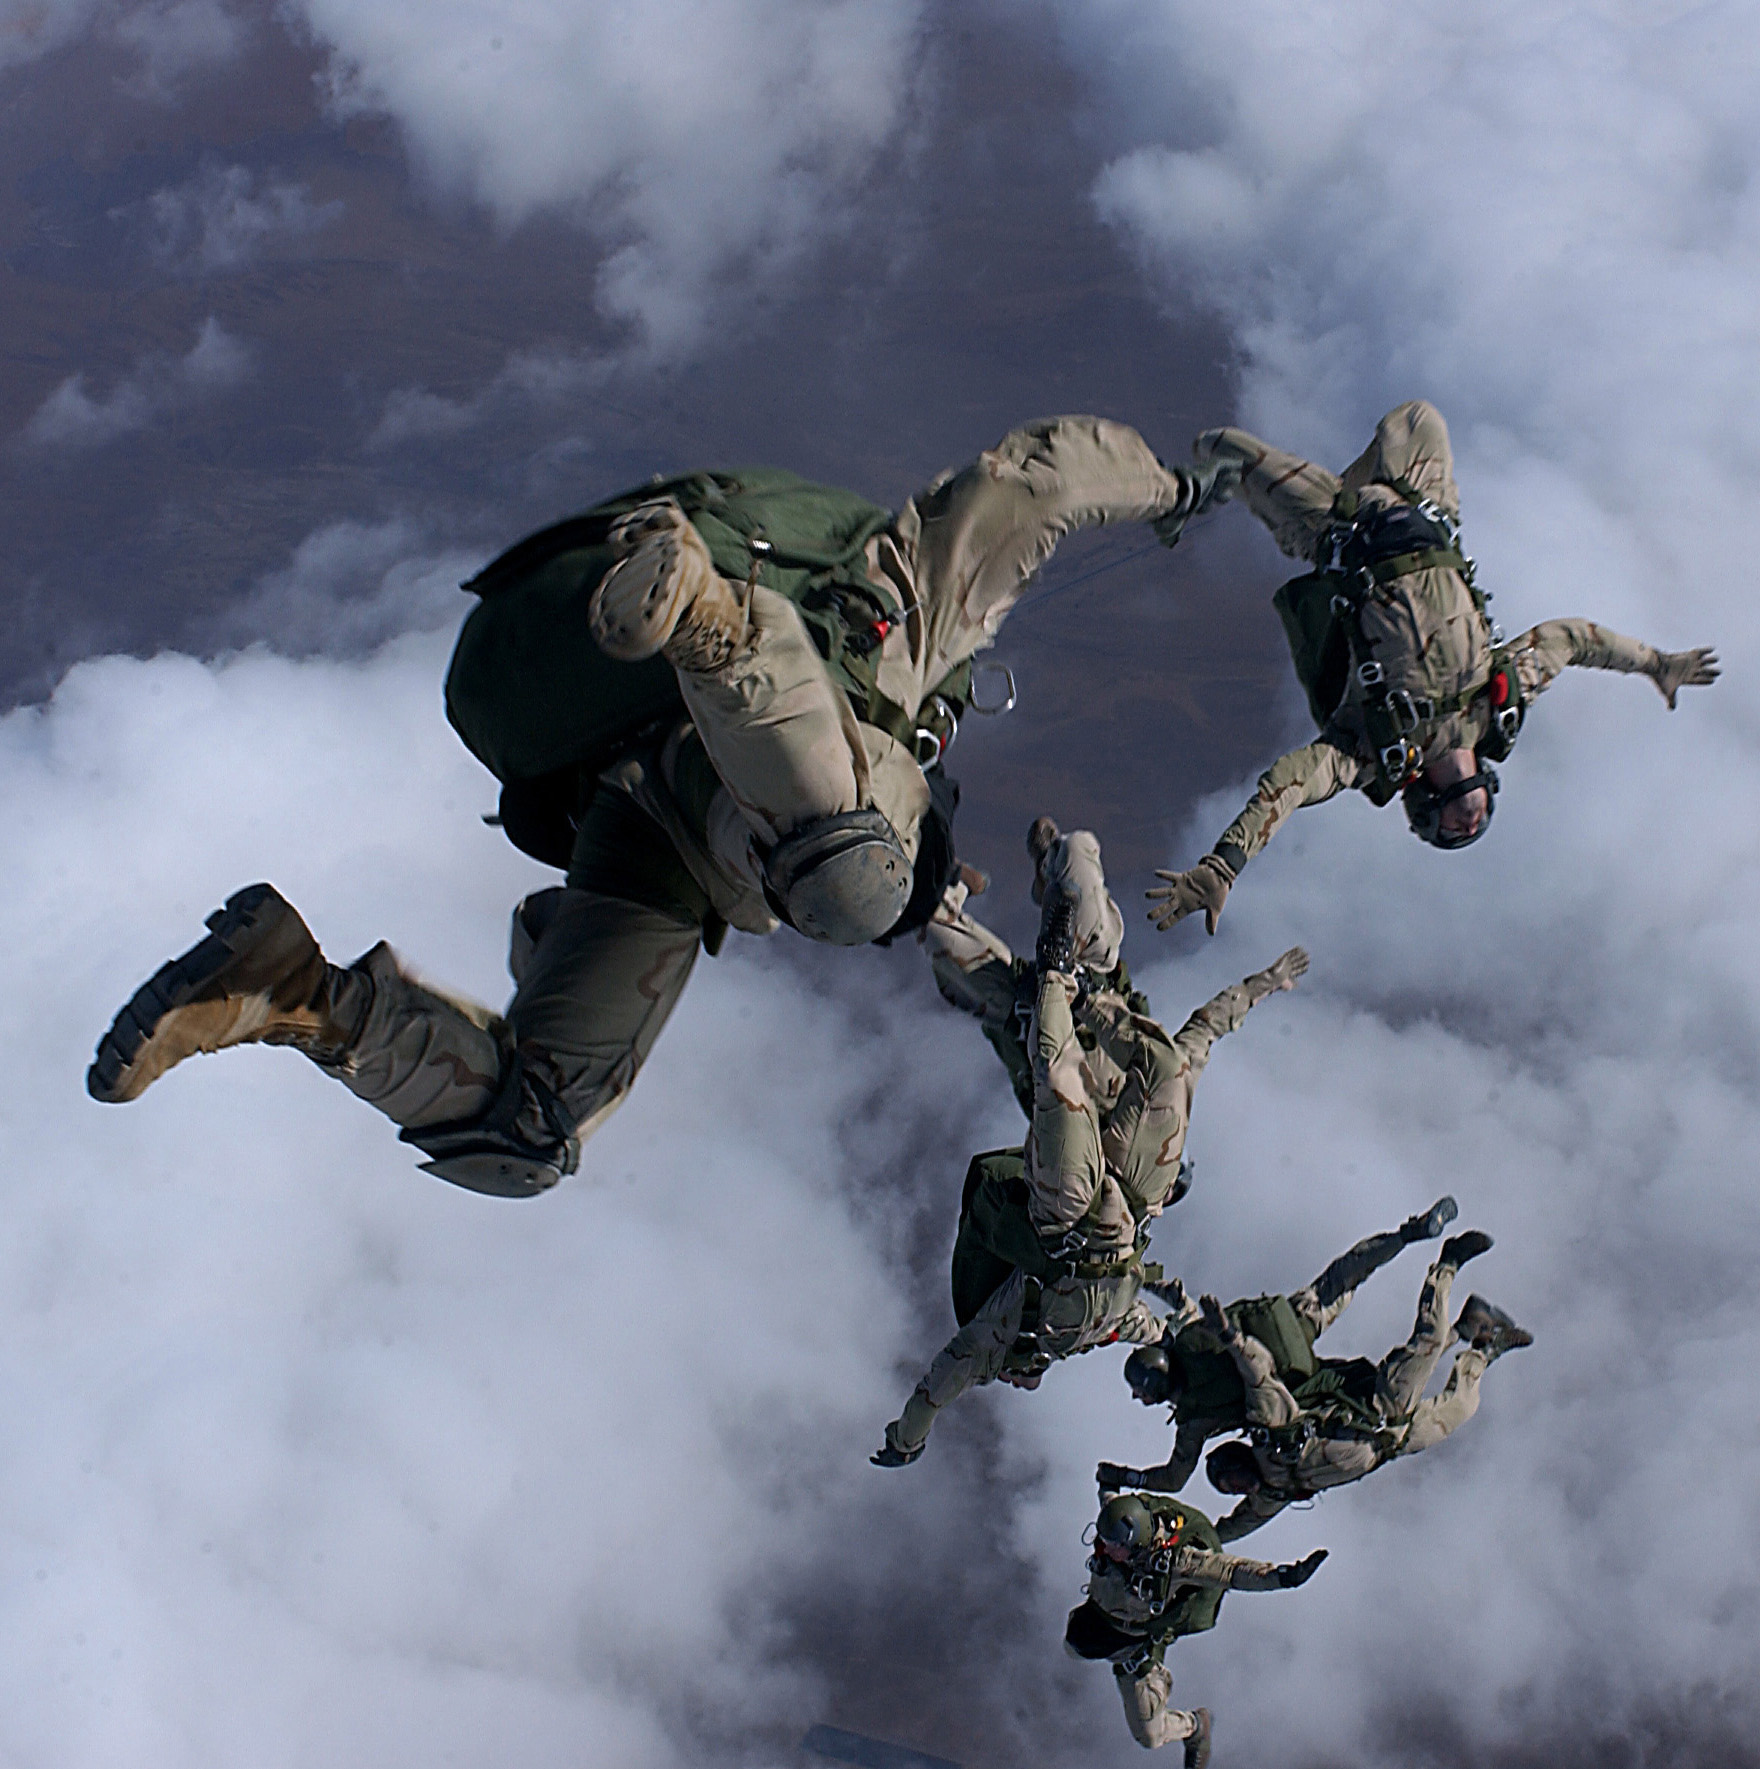 U.S Military Pararescuemen • Nighttime Parachuting • 31 July 2020